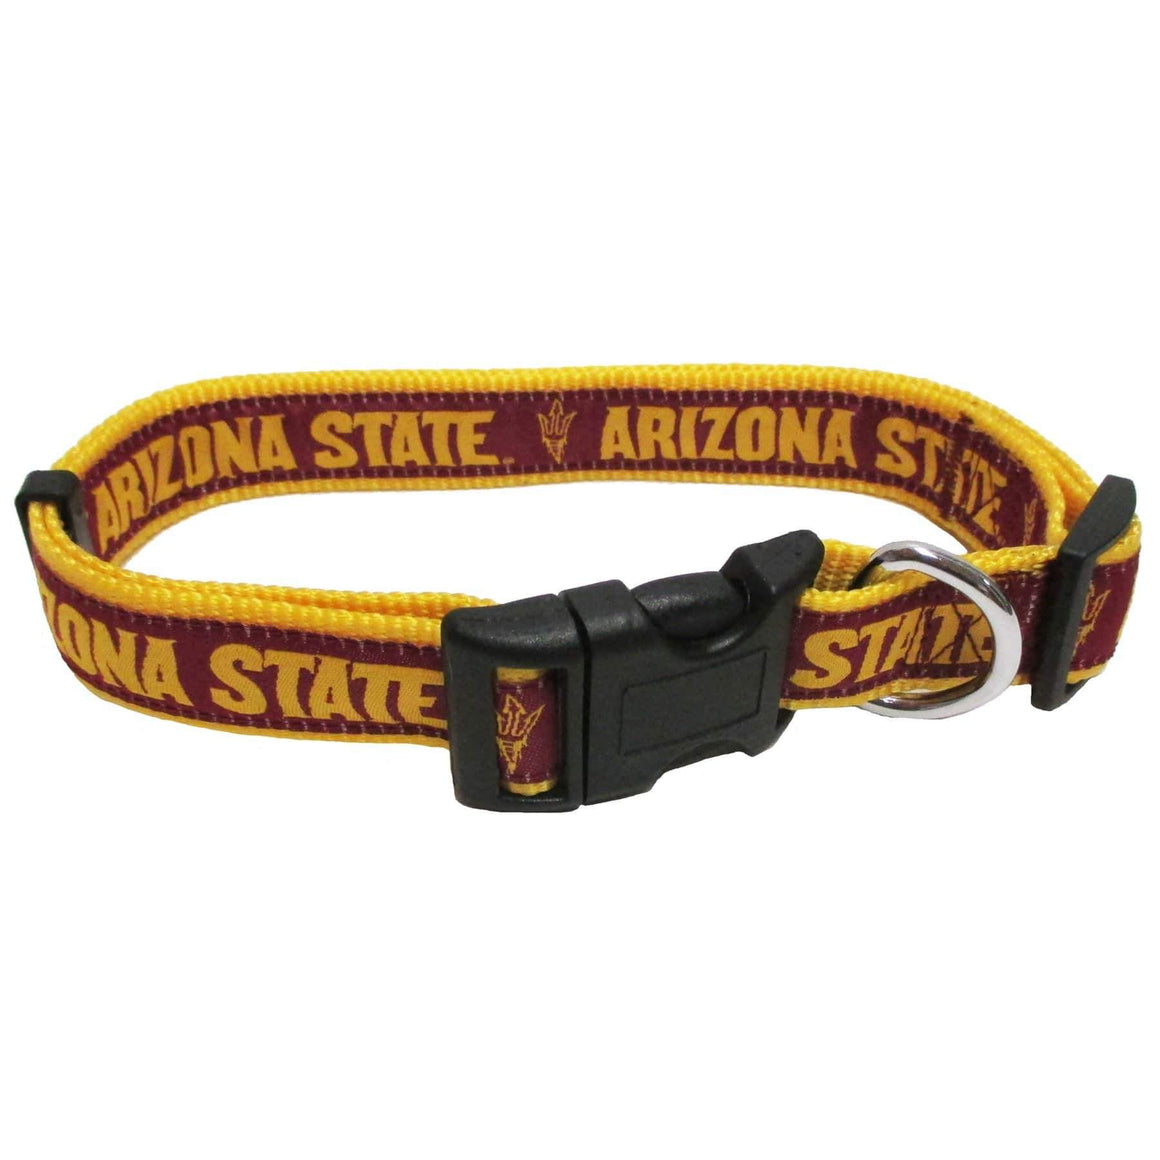 Pets First Dog-products NCAA Small Arizona State Sun Devils Pet Collar By Pets First